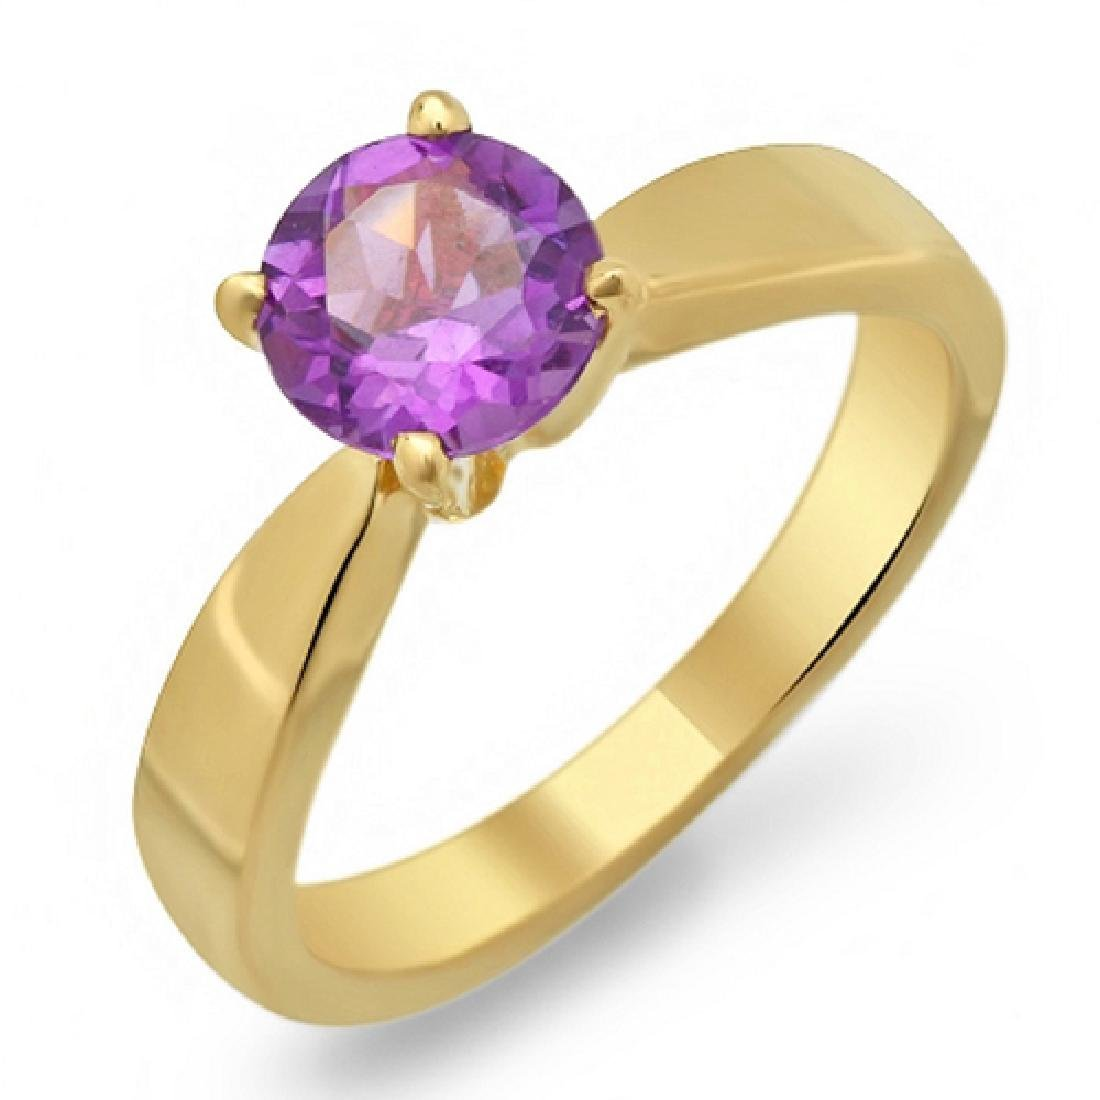 1.30 Carat Natural Amethyst 18K Solid Yellow Gold Ring